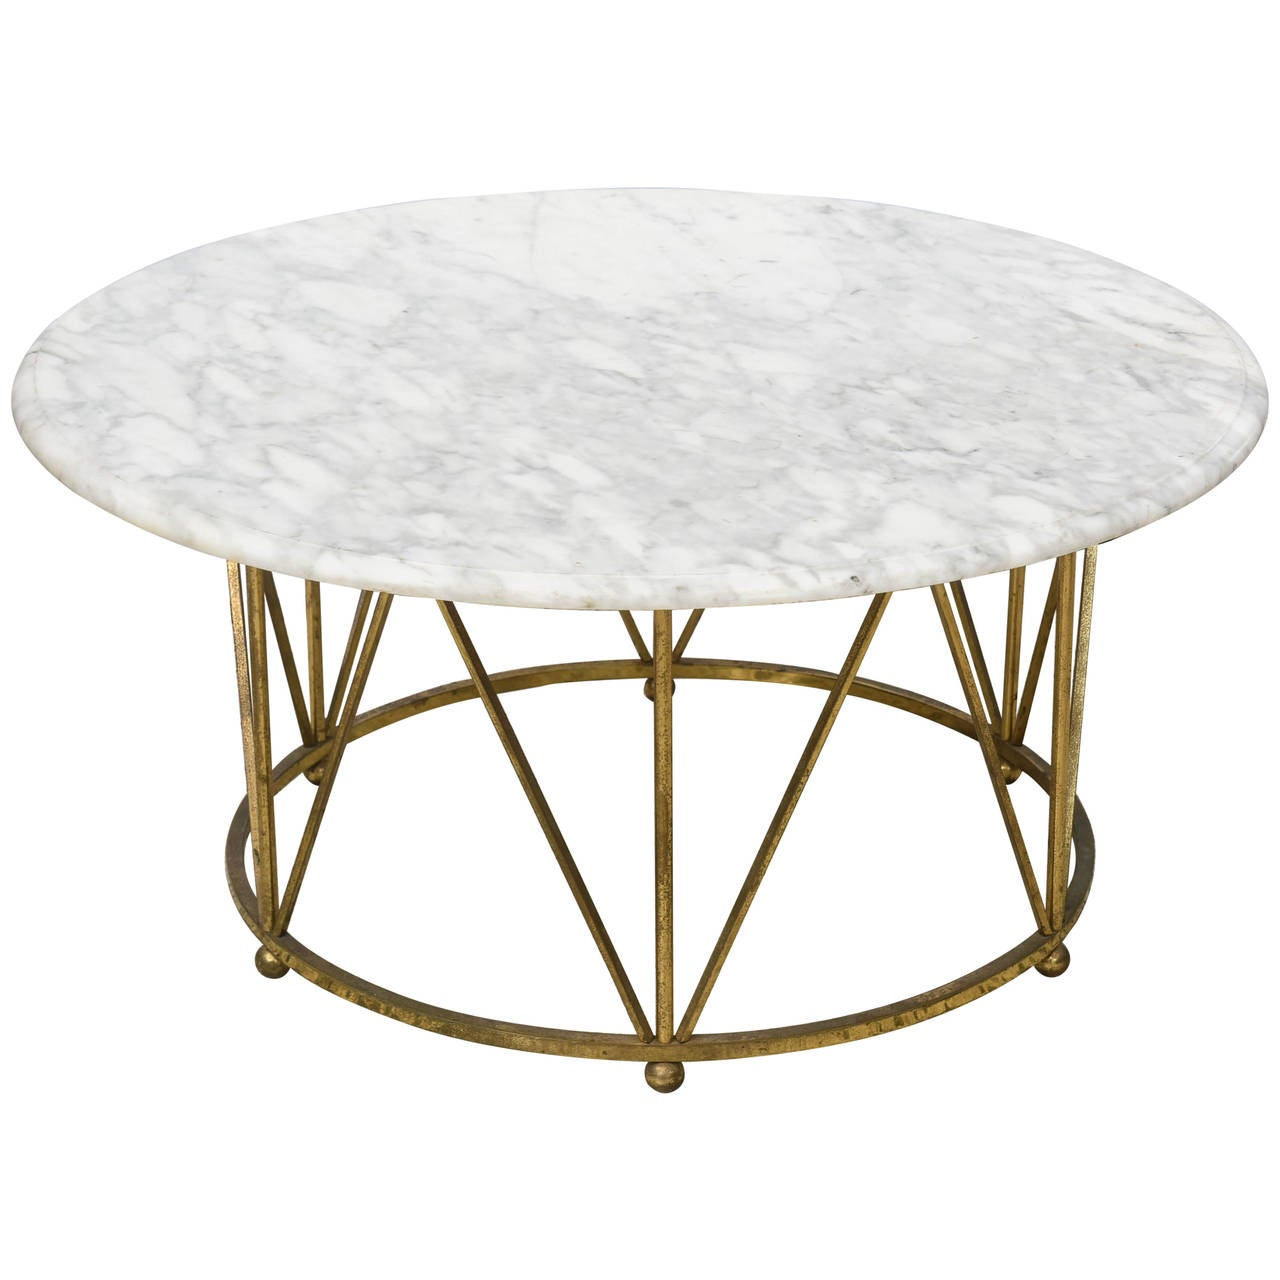 Hollywood Regency La Barge Brass And Carrera Marble Coffee Table Usa 1960s At 1stdibs